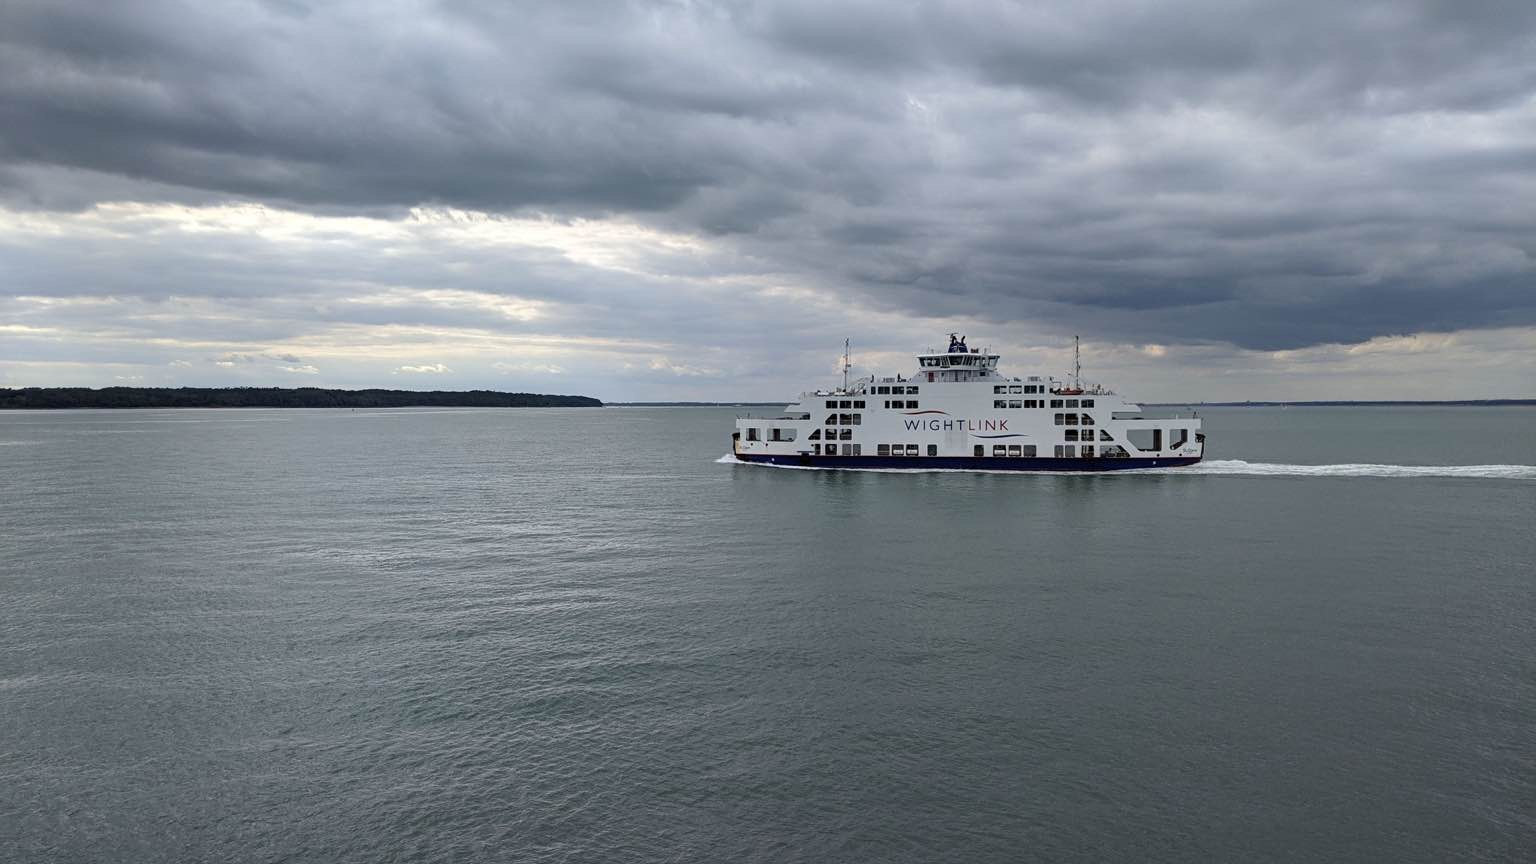 Wightlink Ferry - staycation 2020